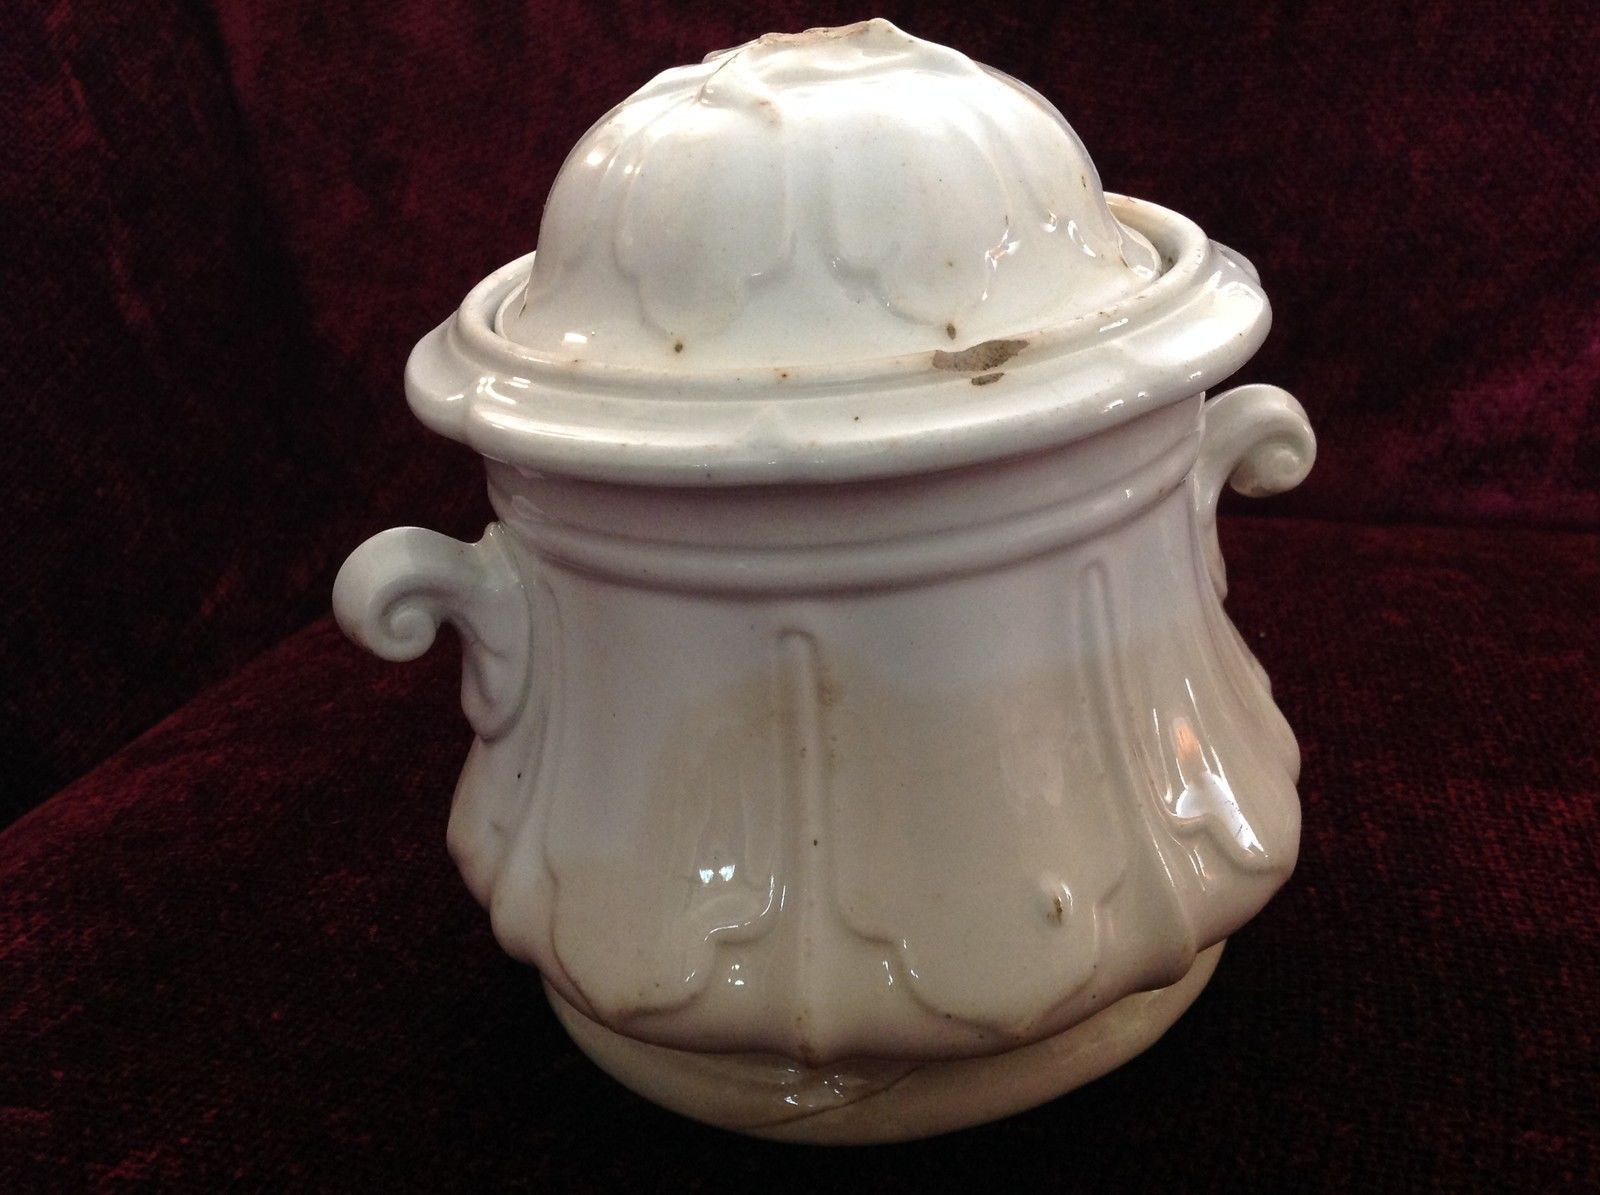 Vintage White Cookie Jar or Canister with Lid Small Handles on Sides